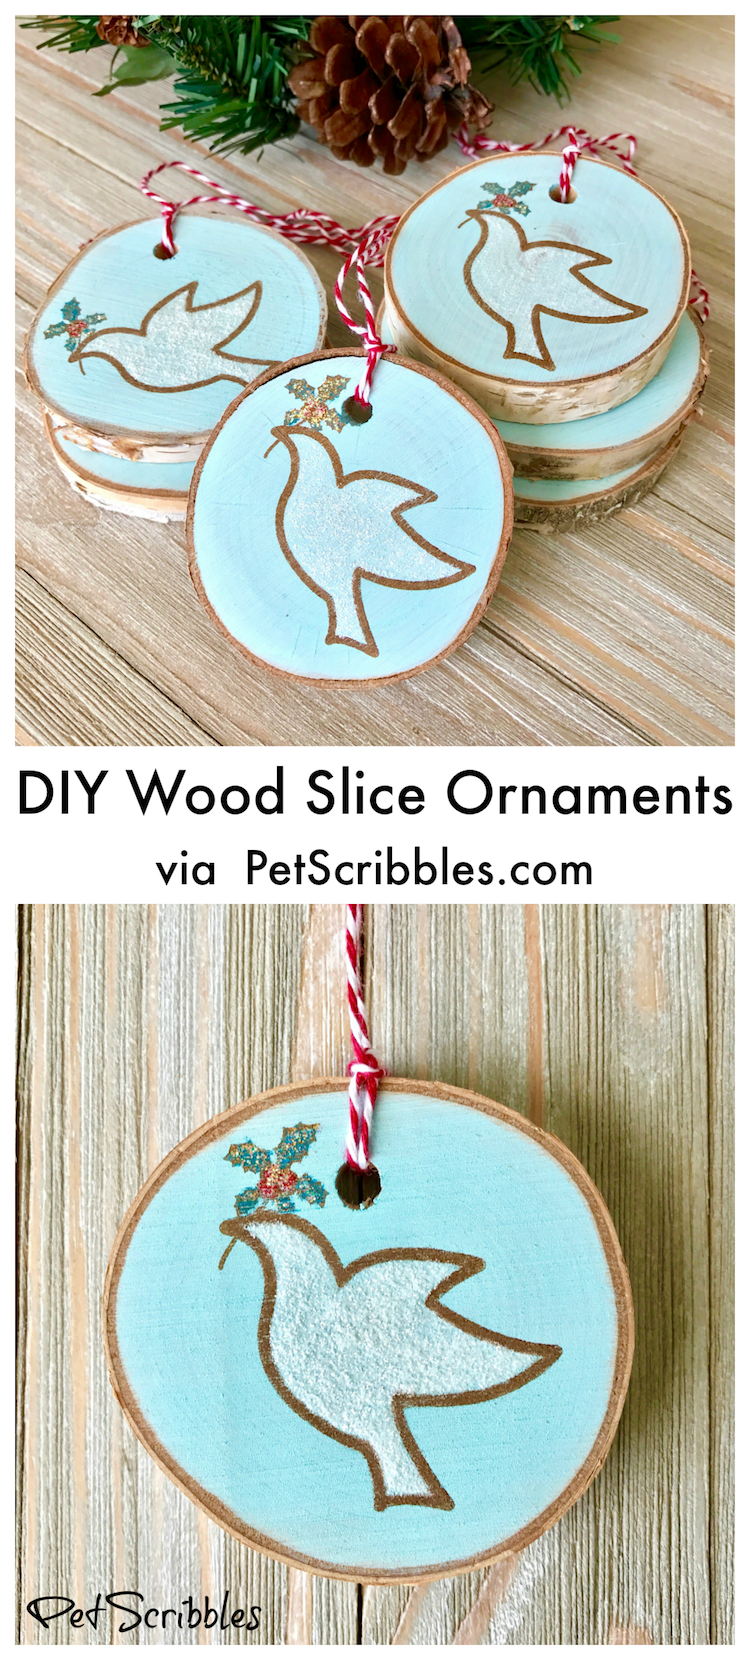 Diy Wood Slice Ornaments For Christmas Diy Christmas Ornaments Diy Christmas Tree Ornaments Diy Christmas Gifts